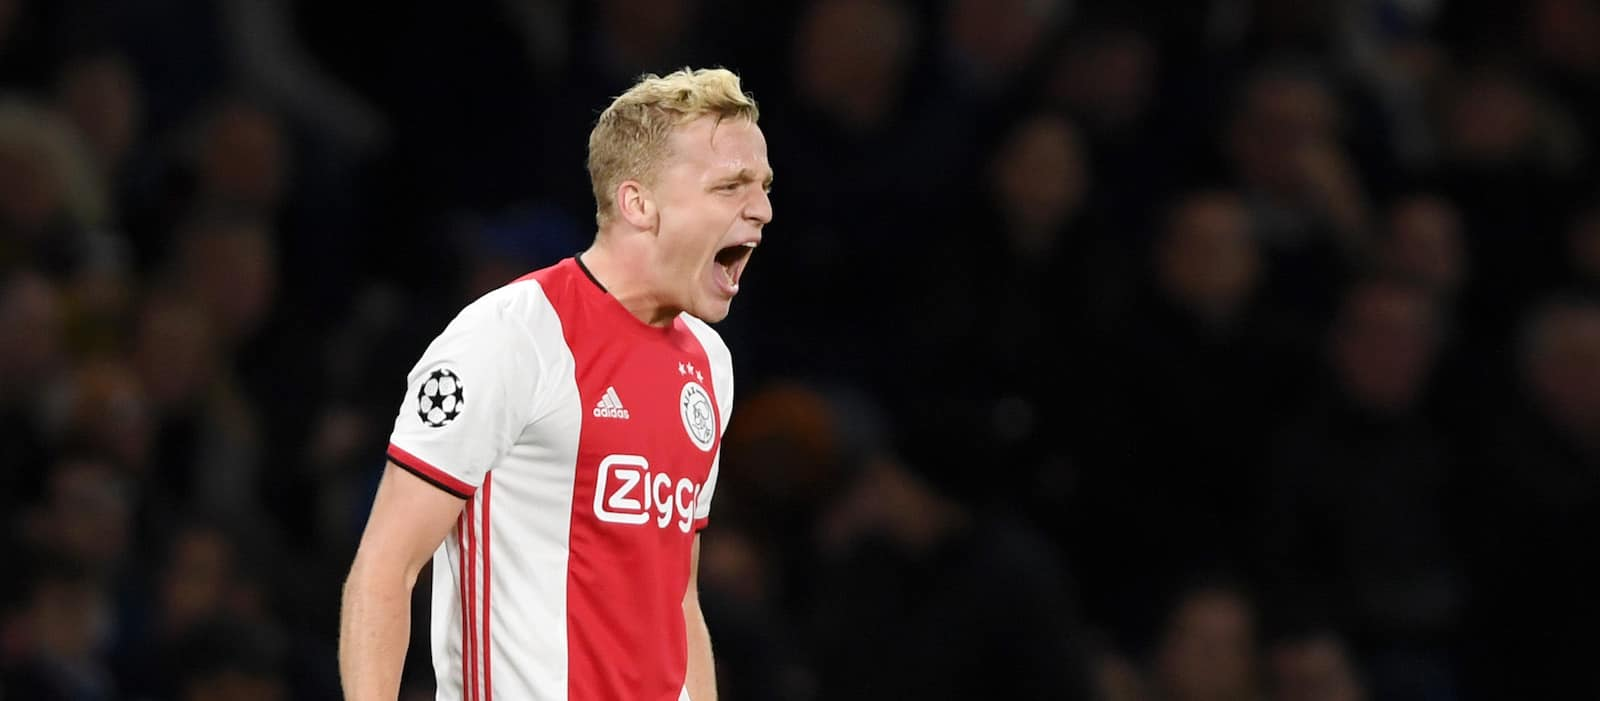 Video: Ajax fans wish Donny van de Beek well at Manchester United